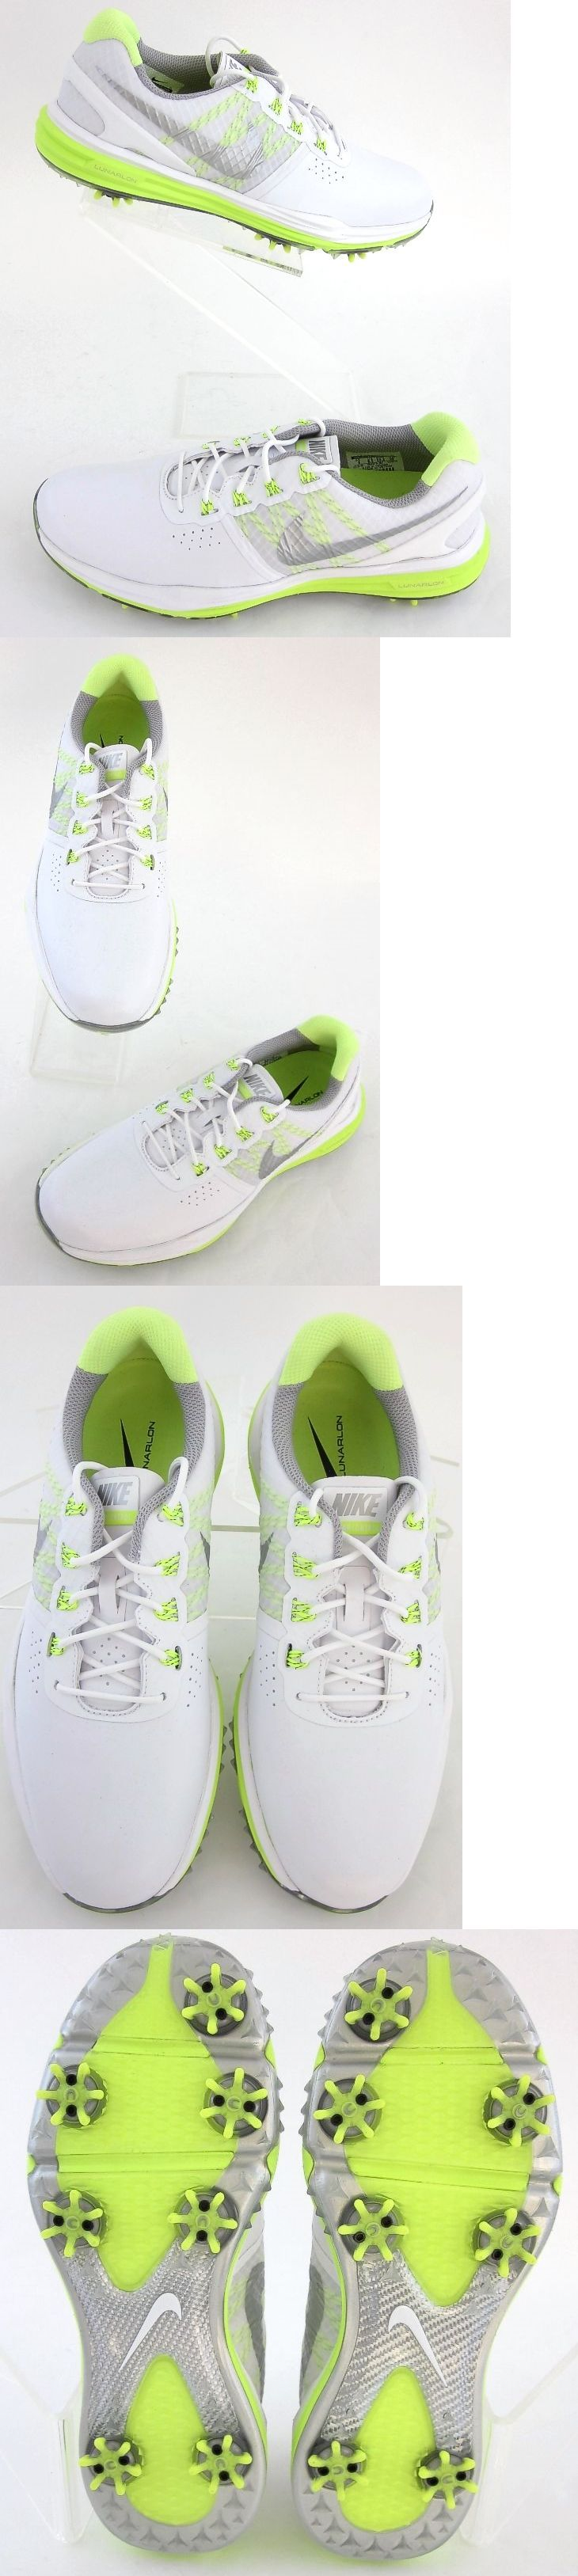 Golf Shoes 181147: New! Nike Lunar Control 3 Womens Golf Shoes White Volt Pick Size Includes Wides -> BUY IT NOW ONLY: $57 on eBay!